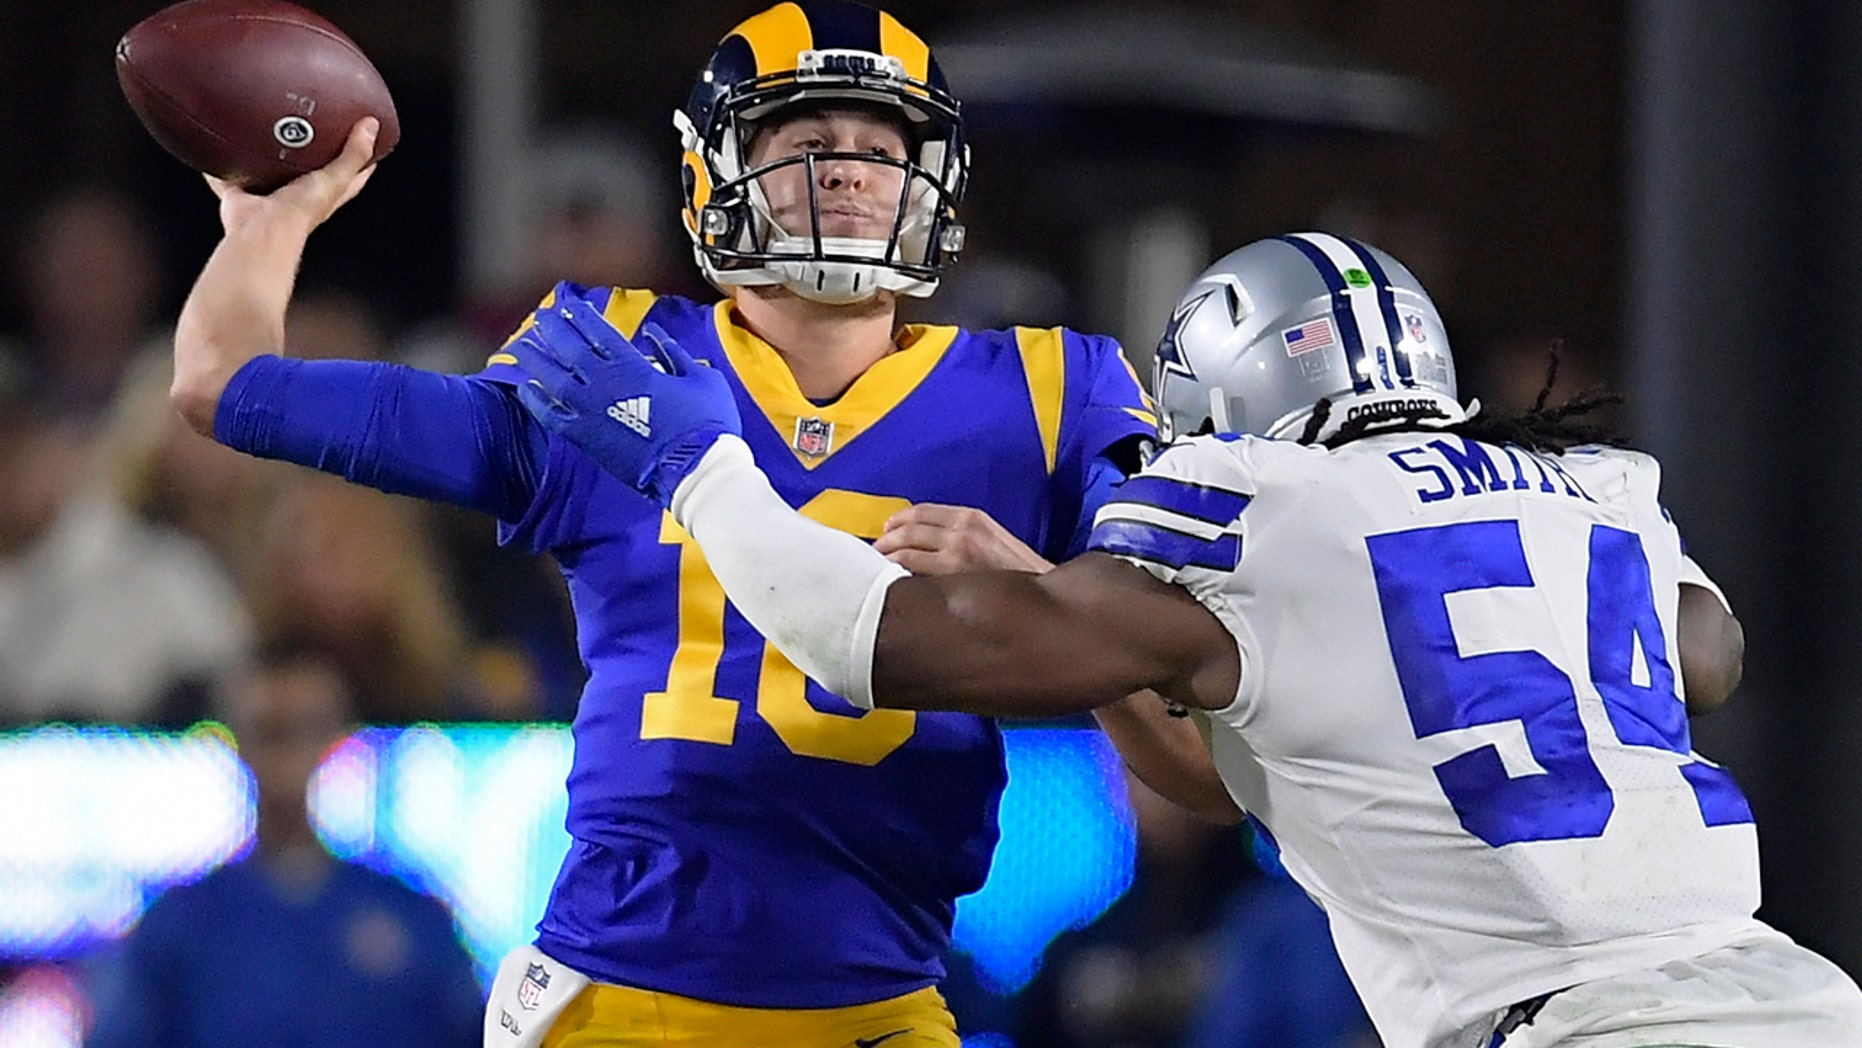 Los Angeles Rams quarterback Jared Goff passes under pressure from Dallas Cowboys middle linebacker Jaylon Smith during the first half in an NFL divisional football playoff game Saturday, Jan. 12, 2019, in Los Angeles. (Associated Press)